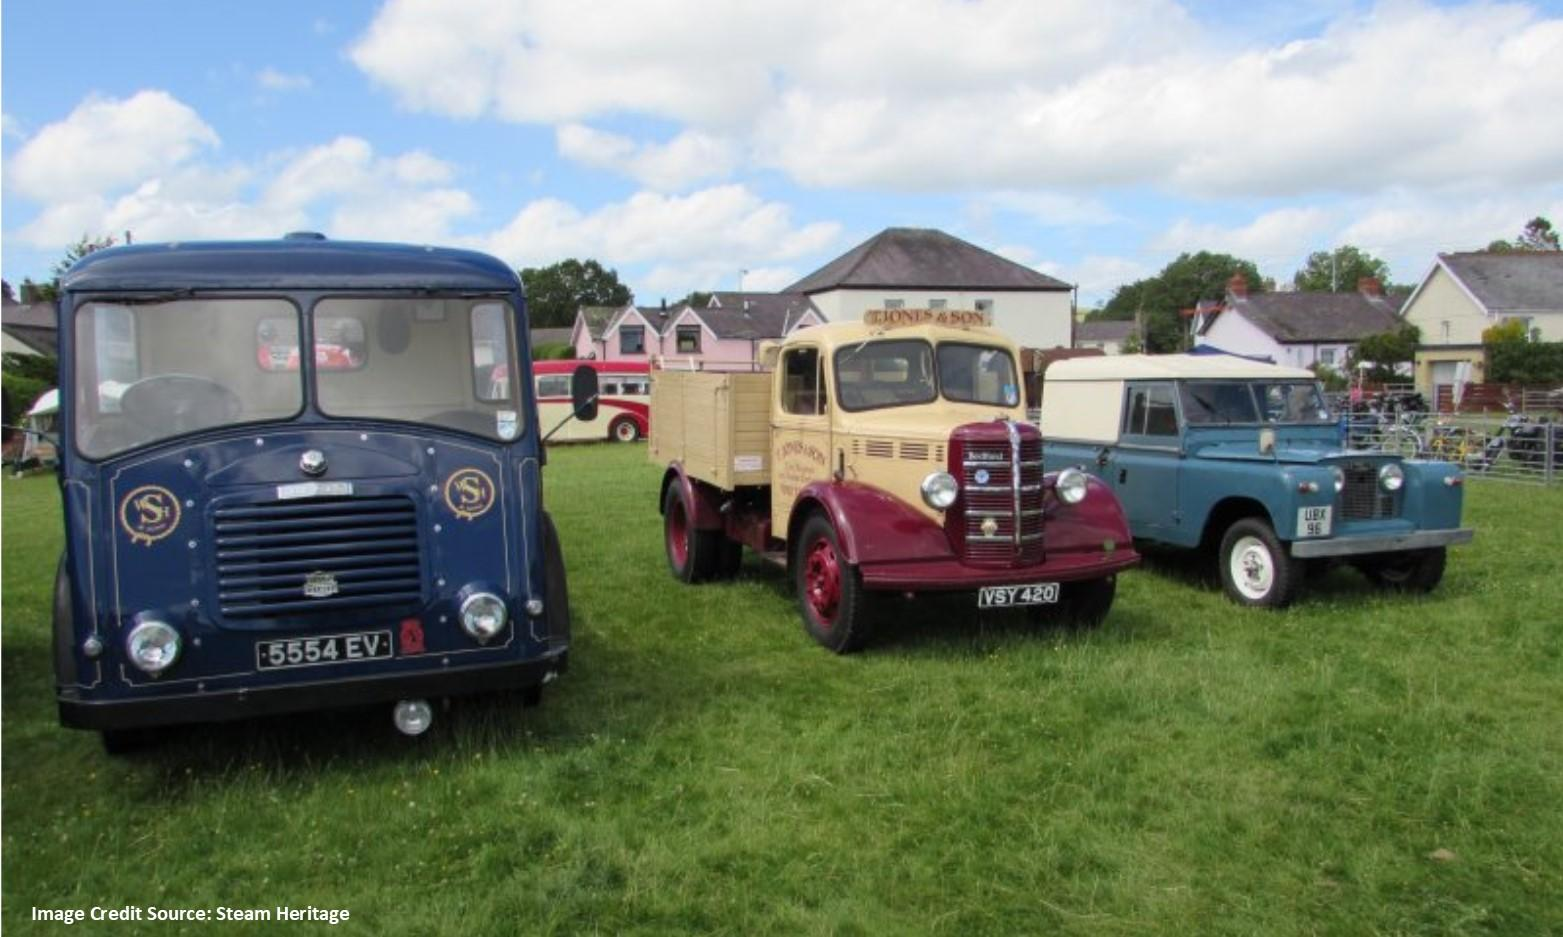 Towy Valley Vintage Club Vintage Show